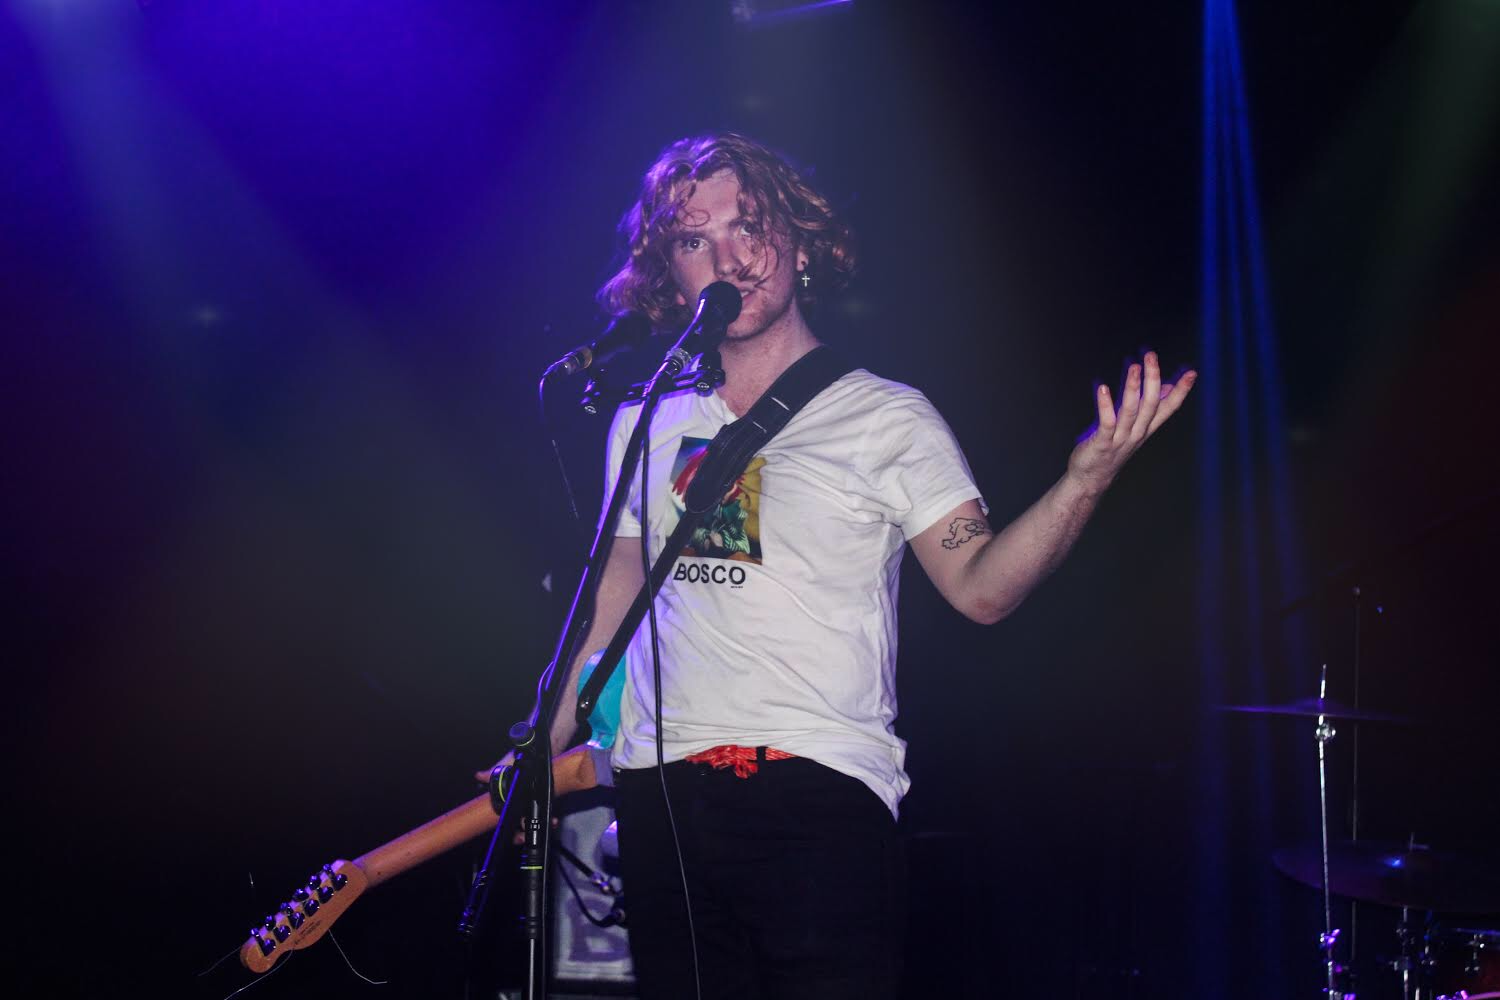 The Love Buzz frontman, Kieran Hurley during a breathless set at Dali. Photo by Leanne Gabriel.